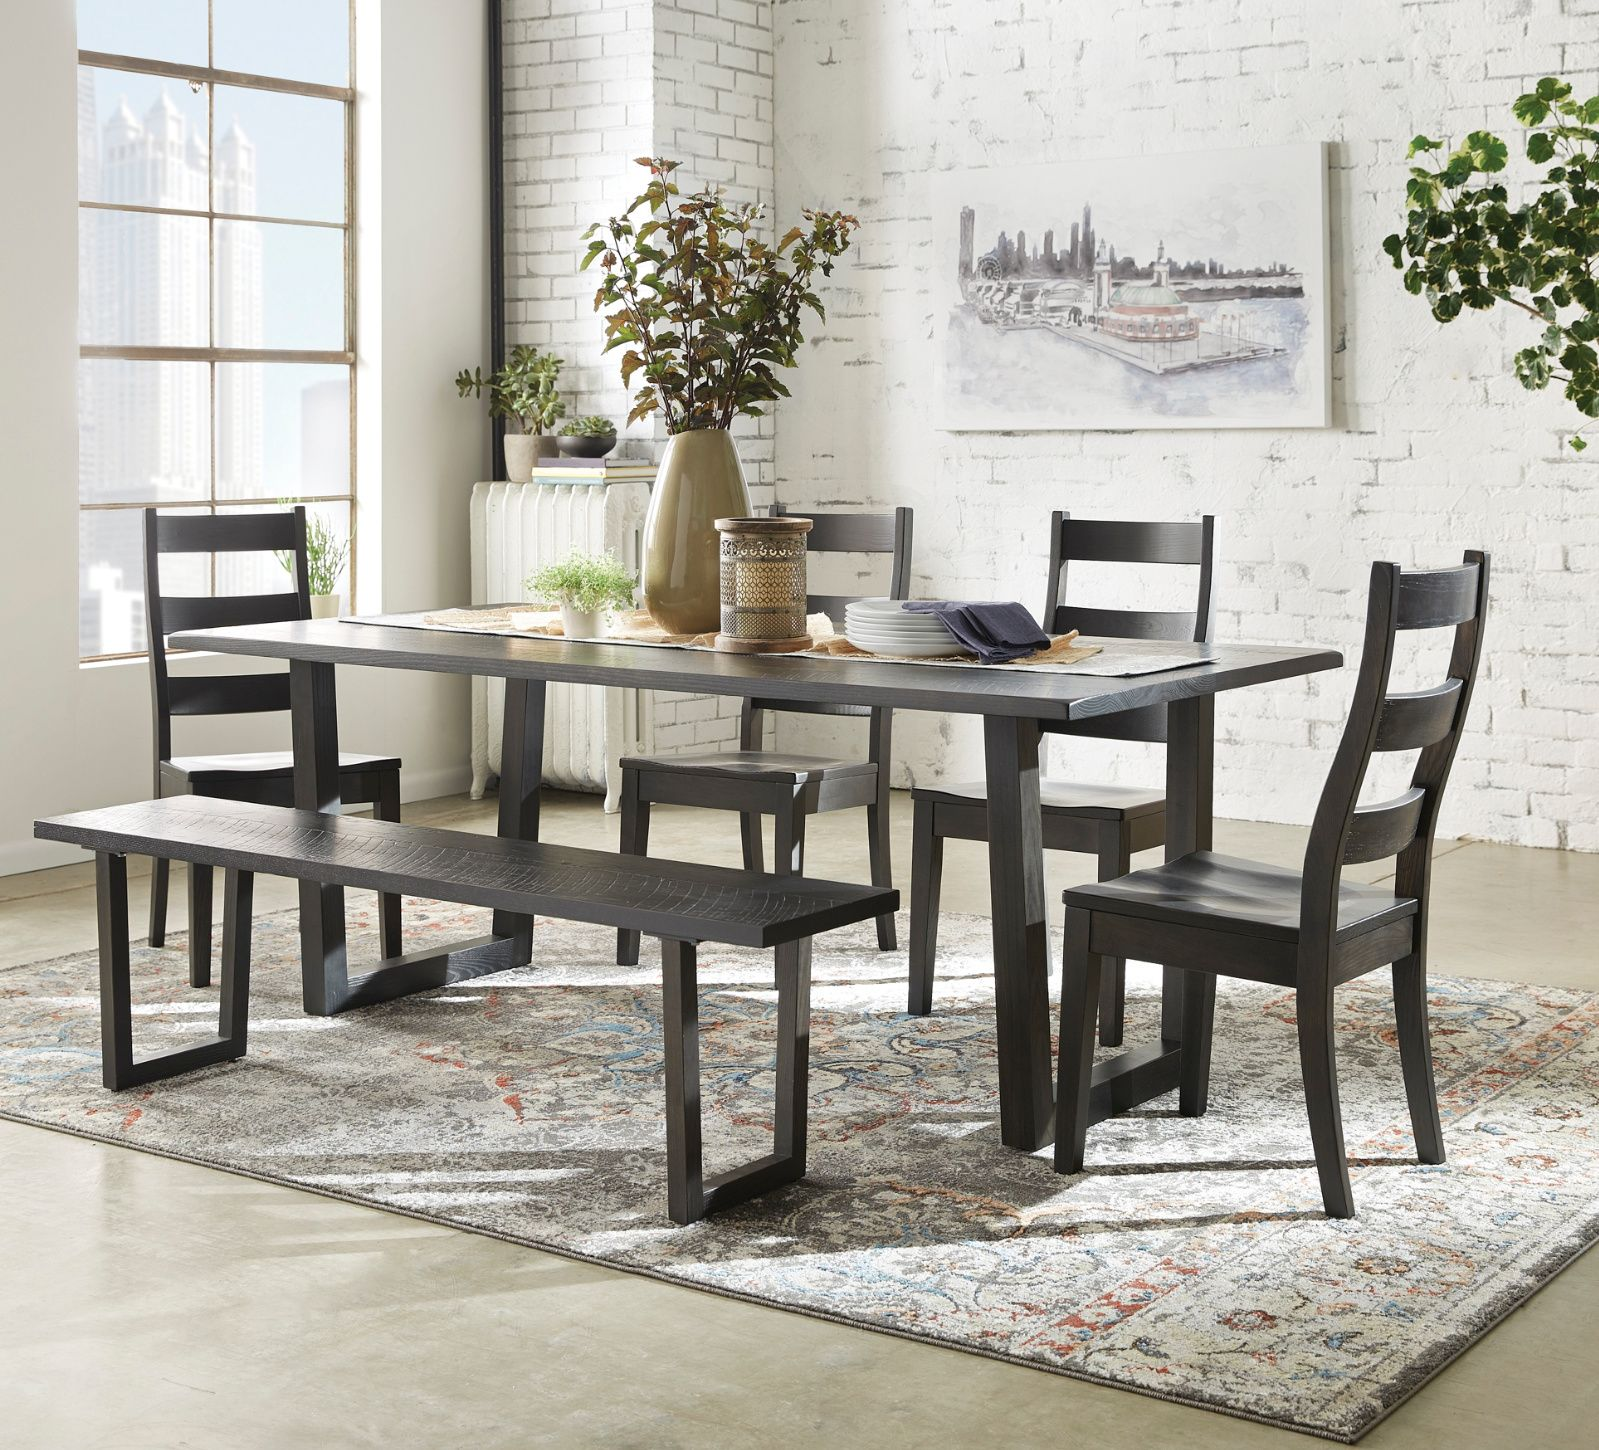 The Detroit Dining Company makes durable solid